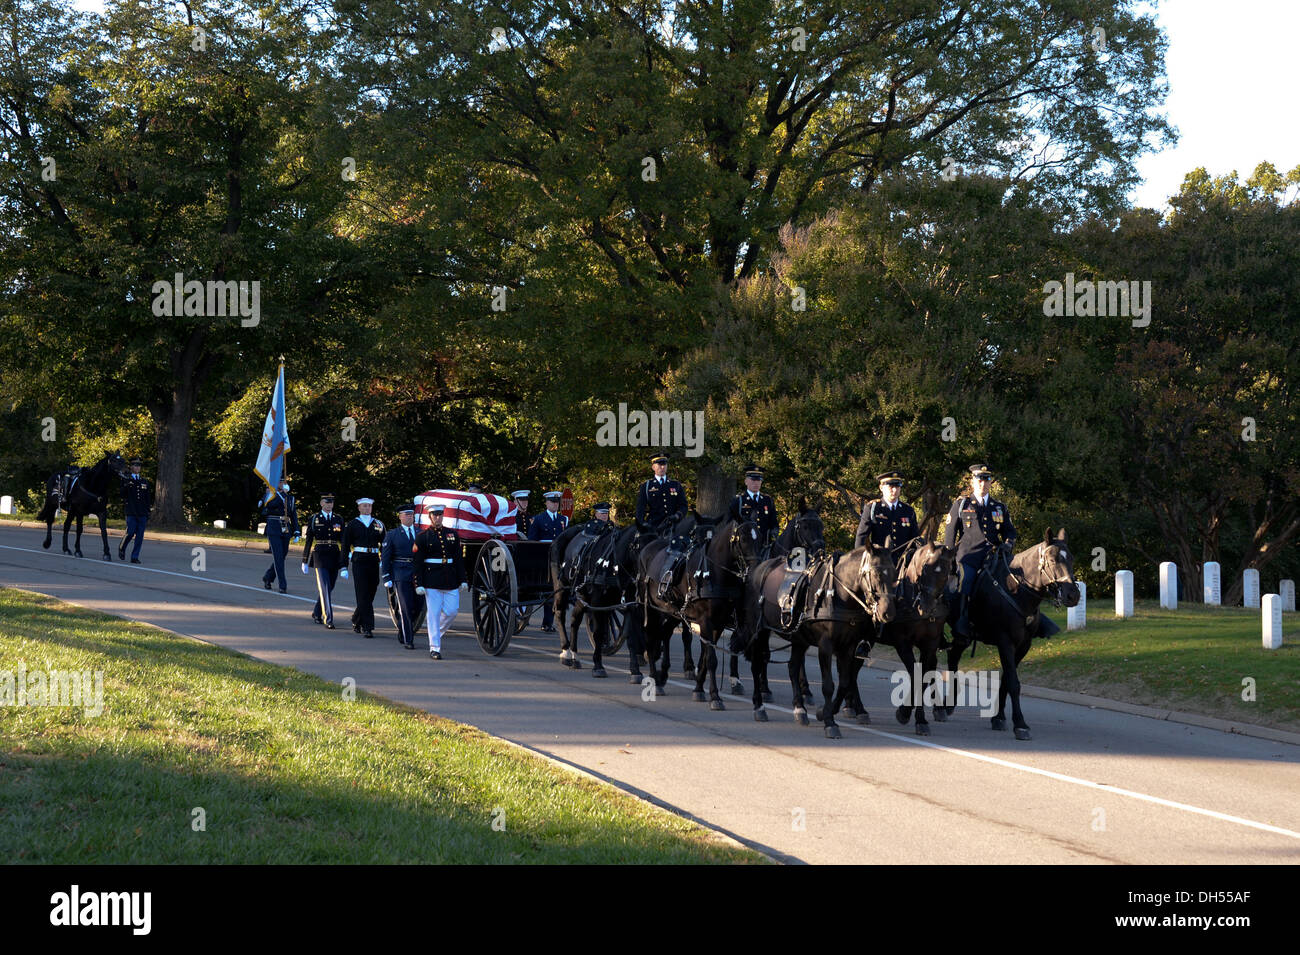 U.S. Service members of the Honor Guard participate in the funeral procession of Gen. David C. Jones, former Chairman of the Joint Chiefs of Staff, at Arlington Cemetery in Arlington, Va., Oct. 25, 2013. - Stock Image